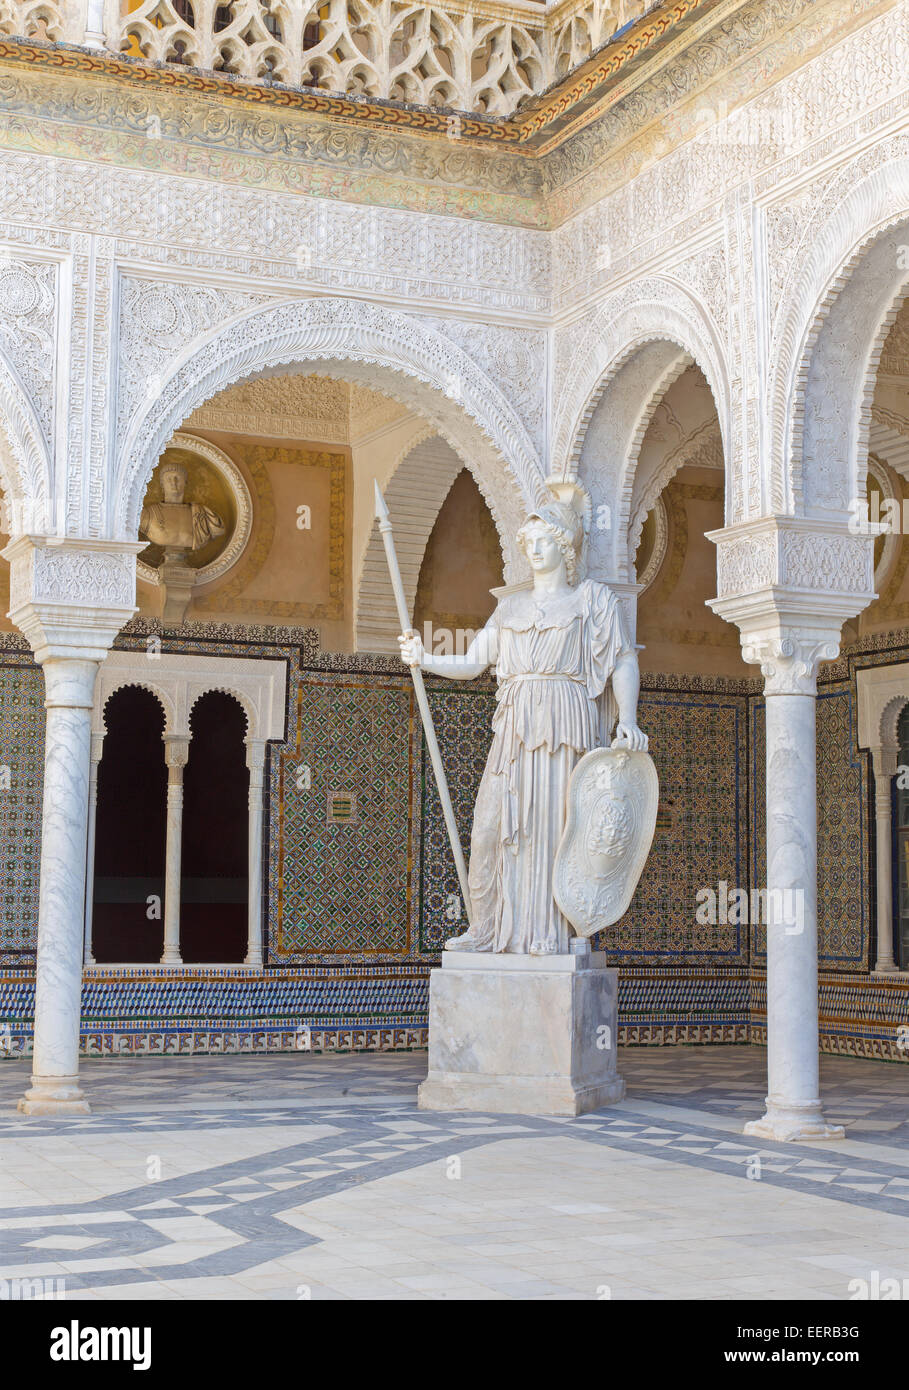 SEVILLE, SPAIN - OCTOBER 28, 2014: The copy of antique statue of Athena in the Courtyard of Casa de Pilatos . - Stock Image